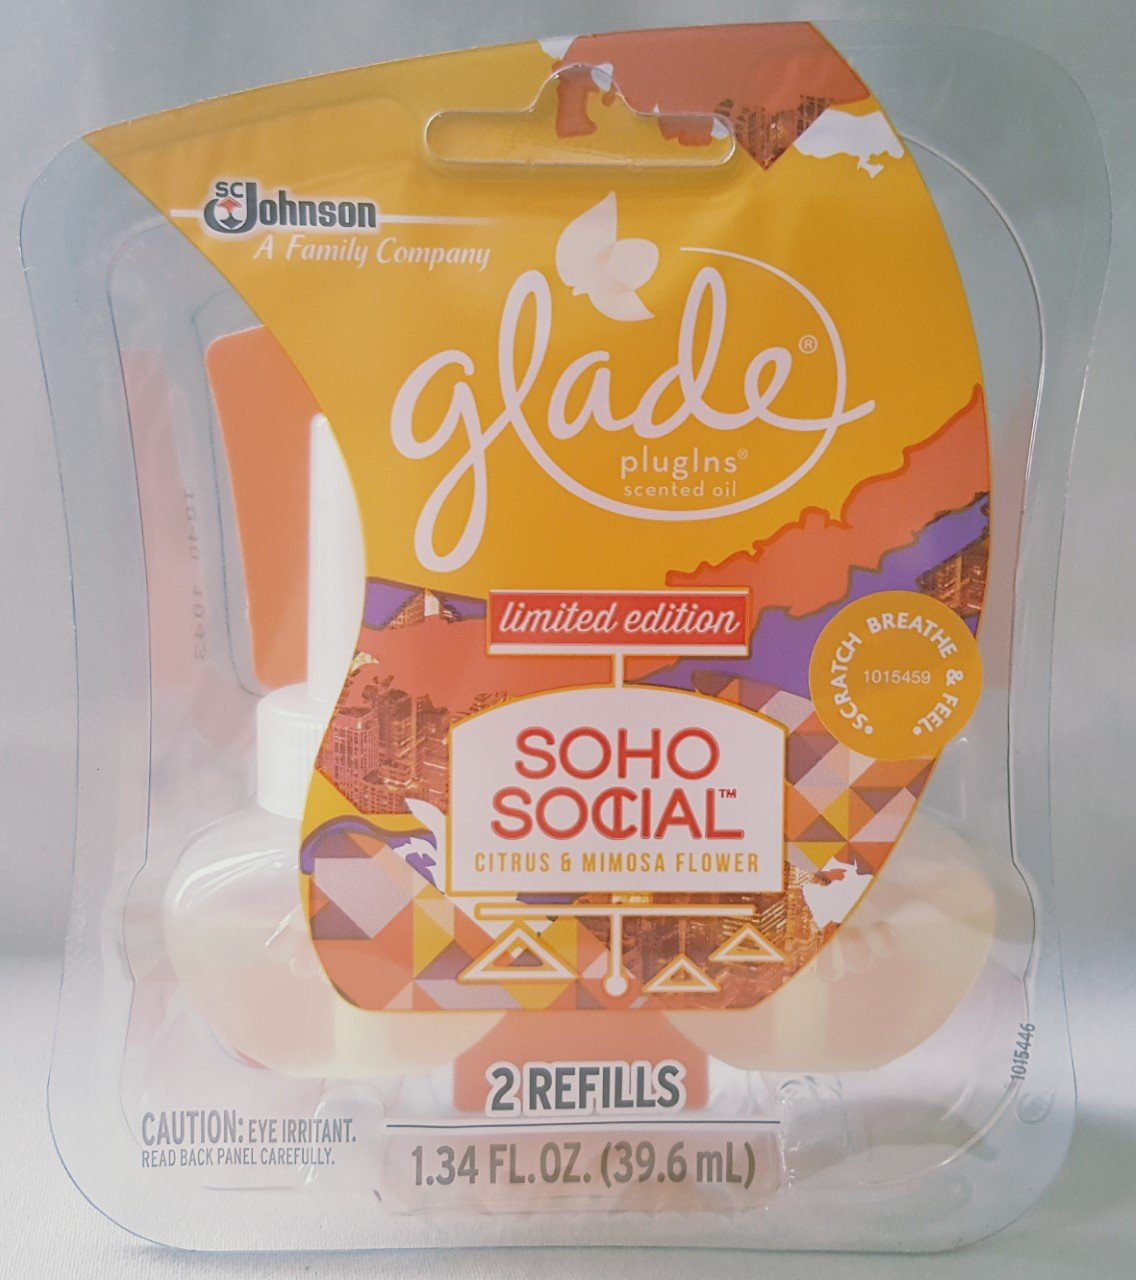 24 Glade SOHO Social PLUGINS Scented Oil Refills Limited Citrus & Mimosa 12 Pack by Glade (Image #2)